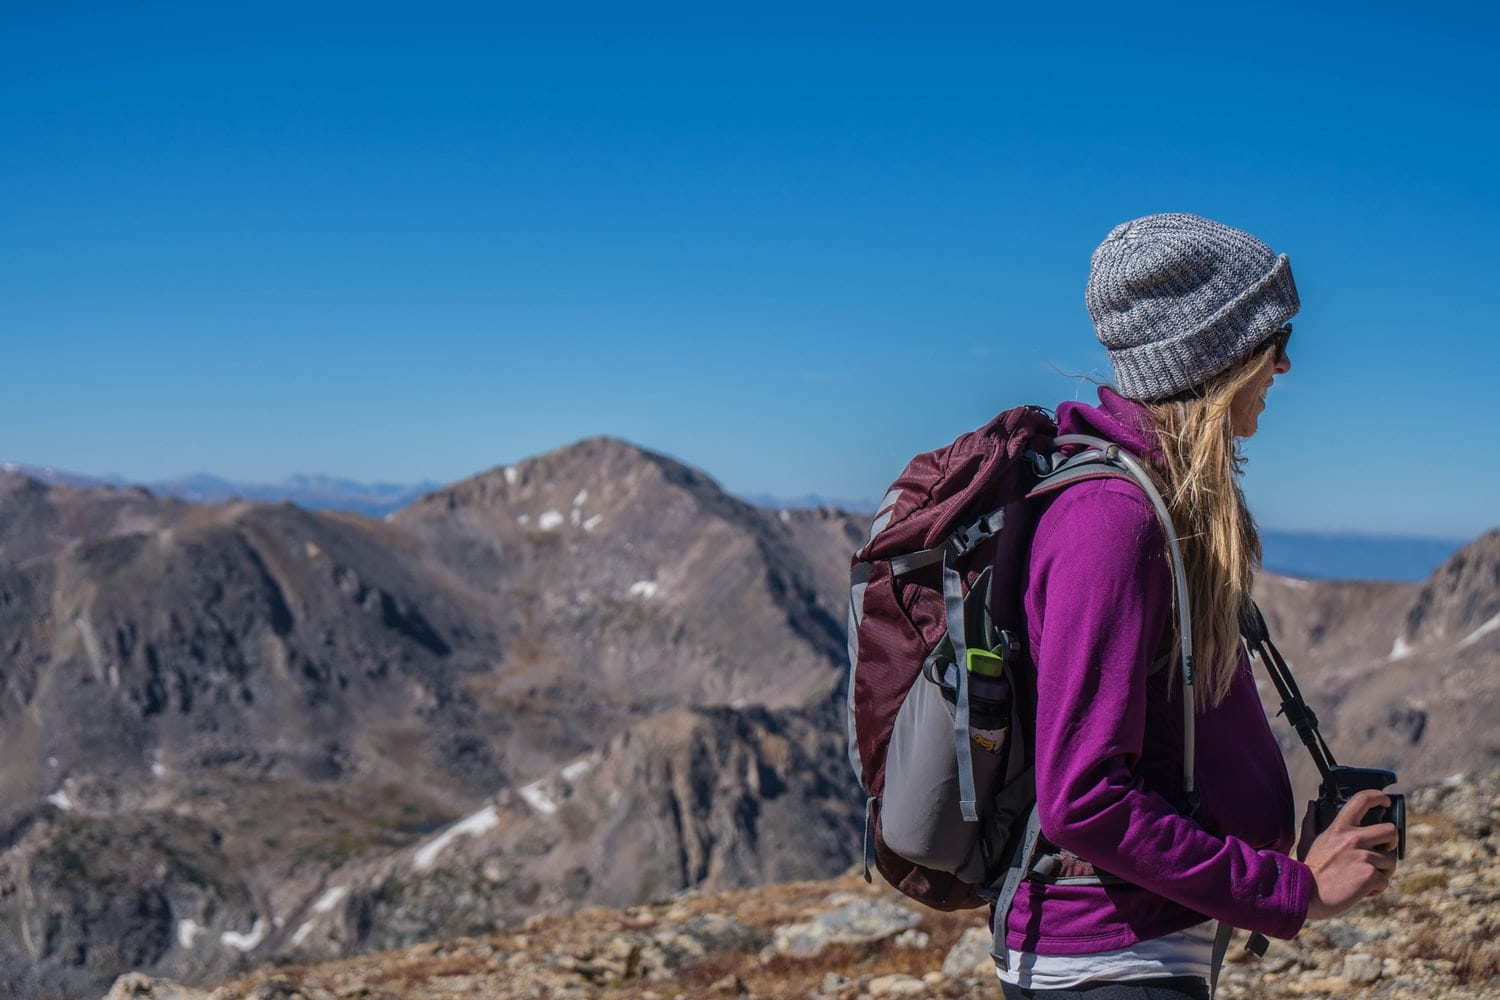 Woman Hiking with Backpack Gear